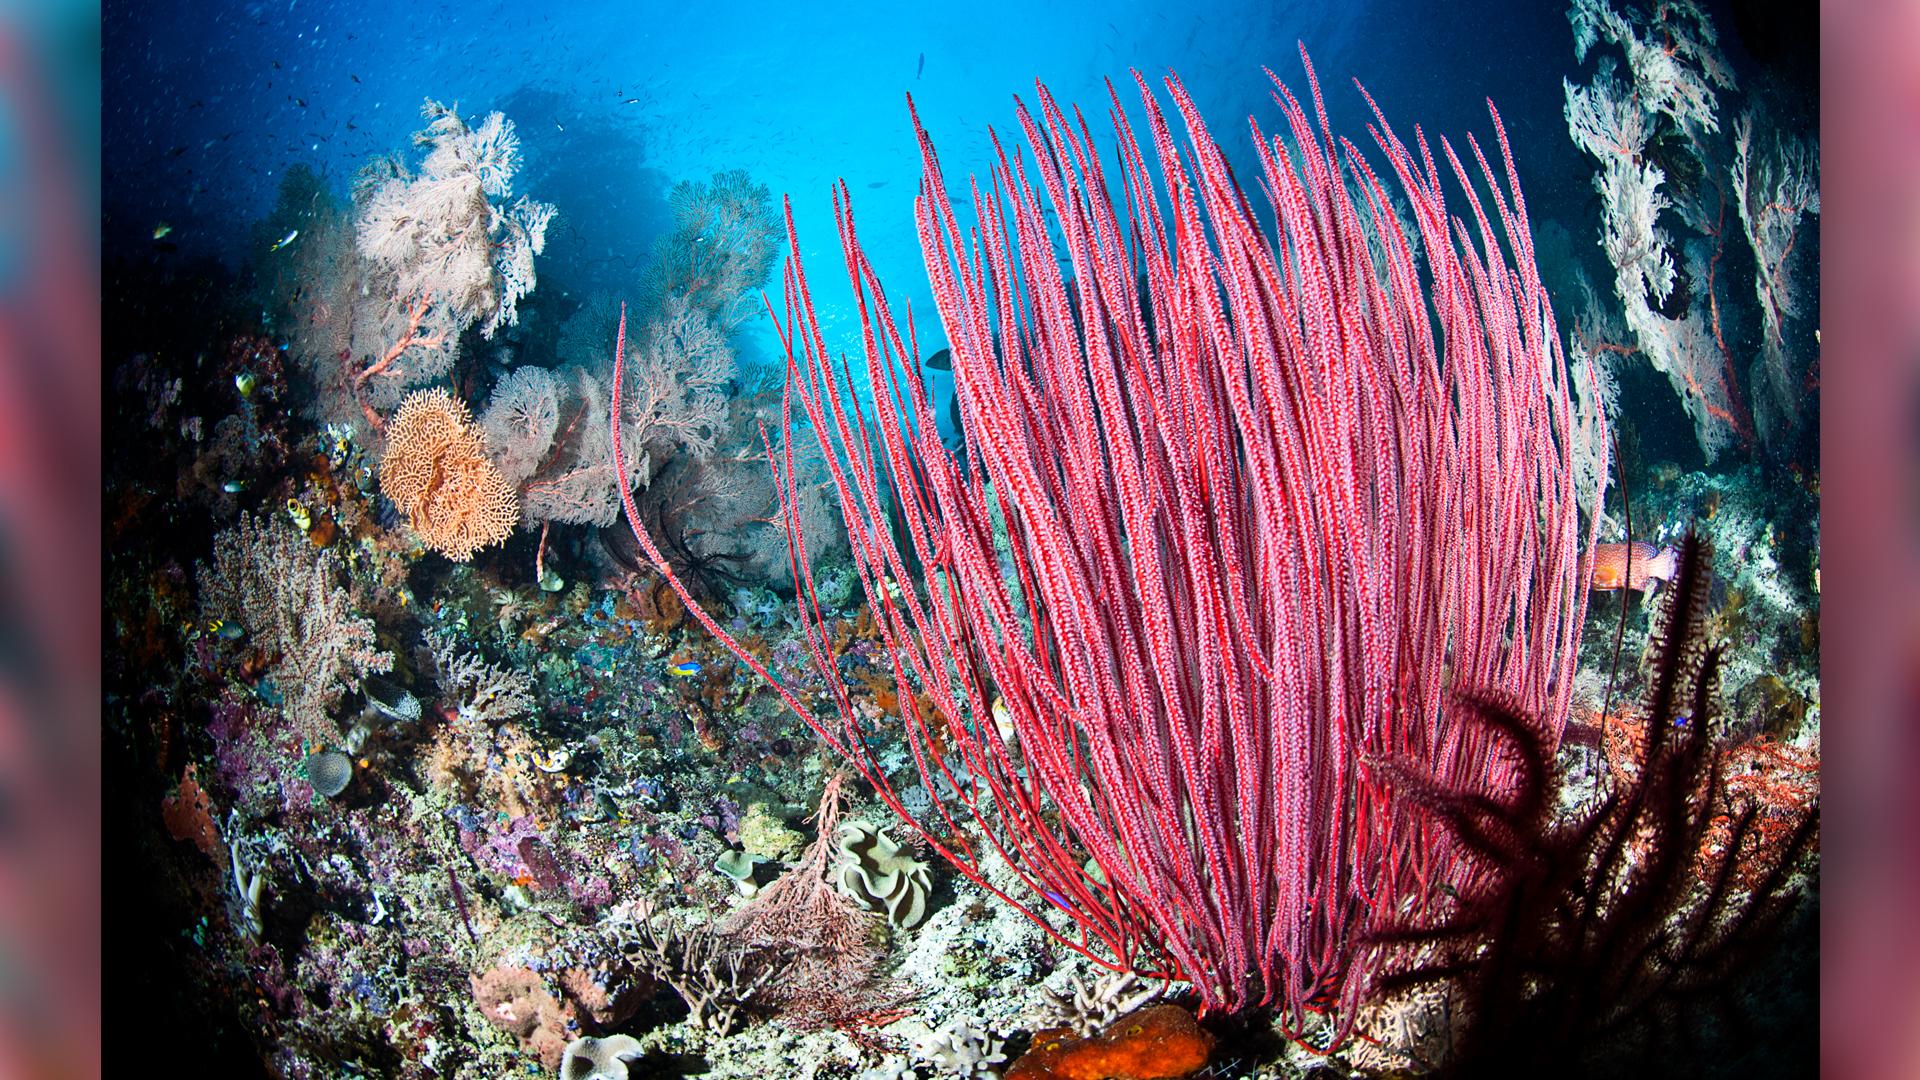 Red sea whip in a coral reef in West Papua, Indonesia.